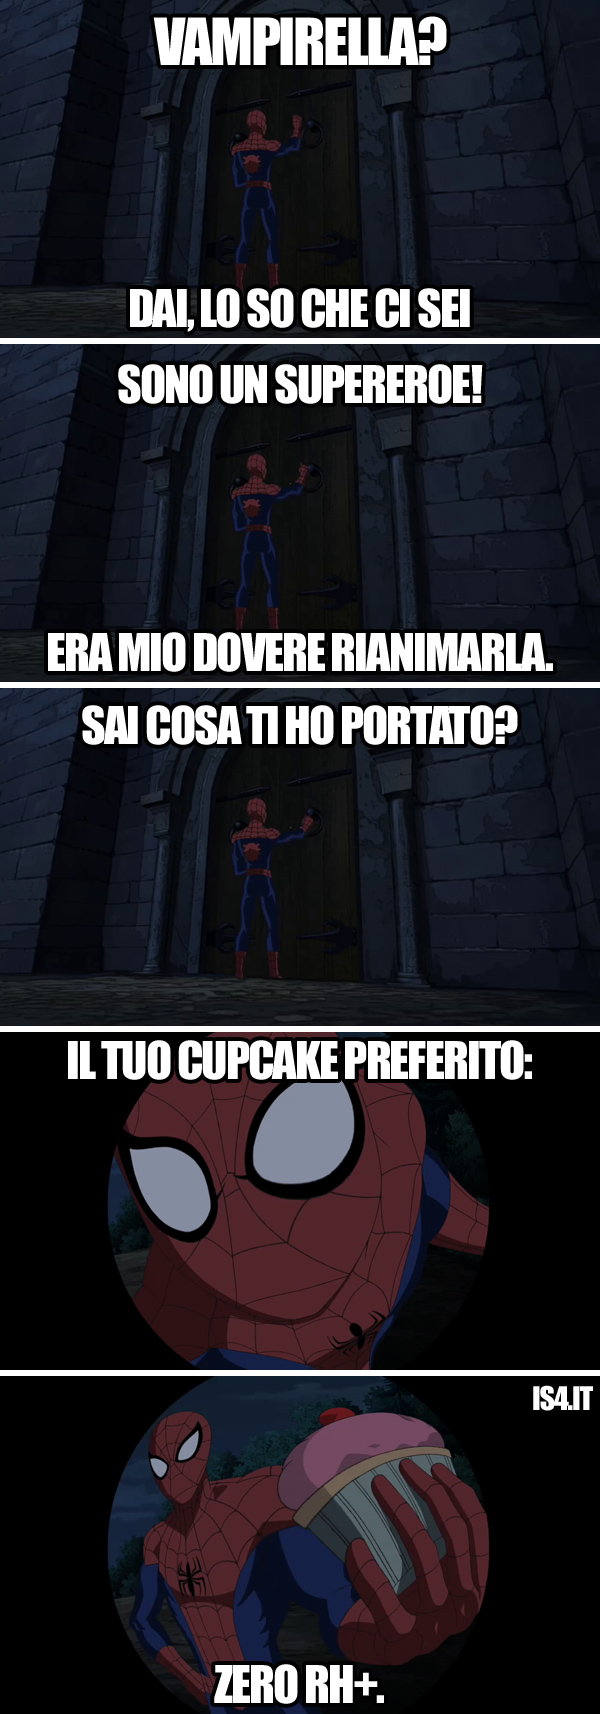 Ultimate Spider-Man animated series meme ita - Vampirella